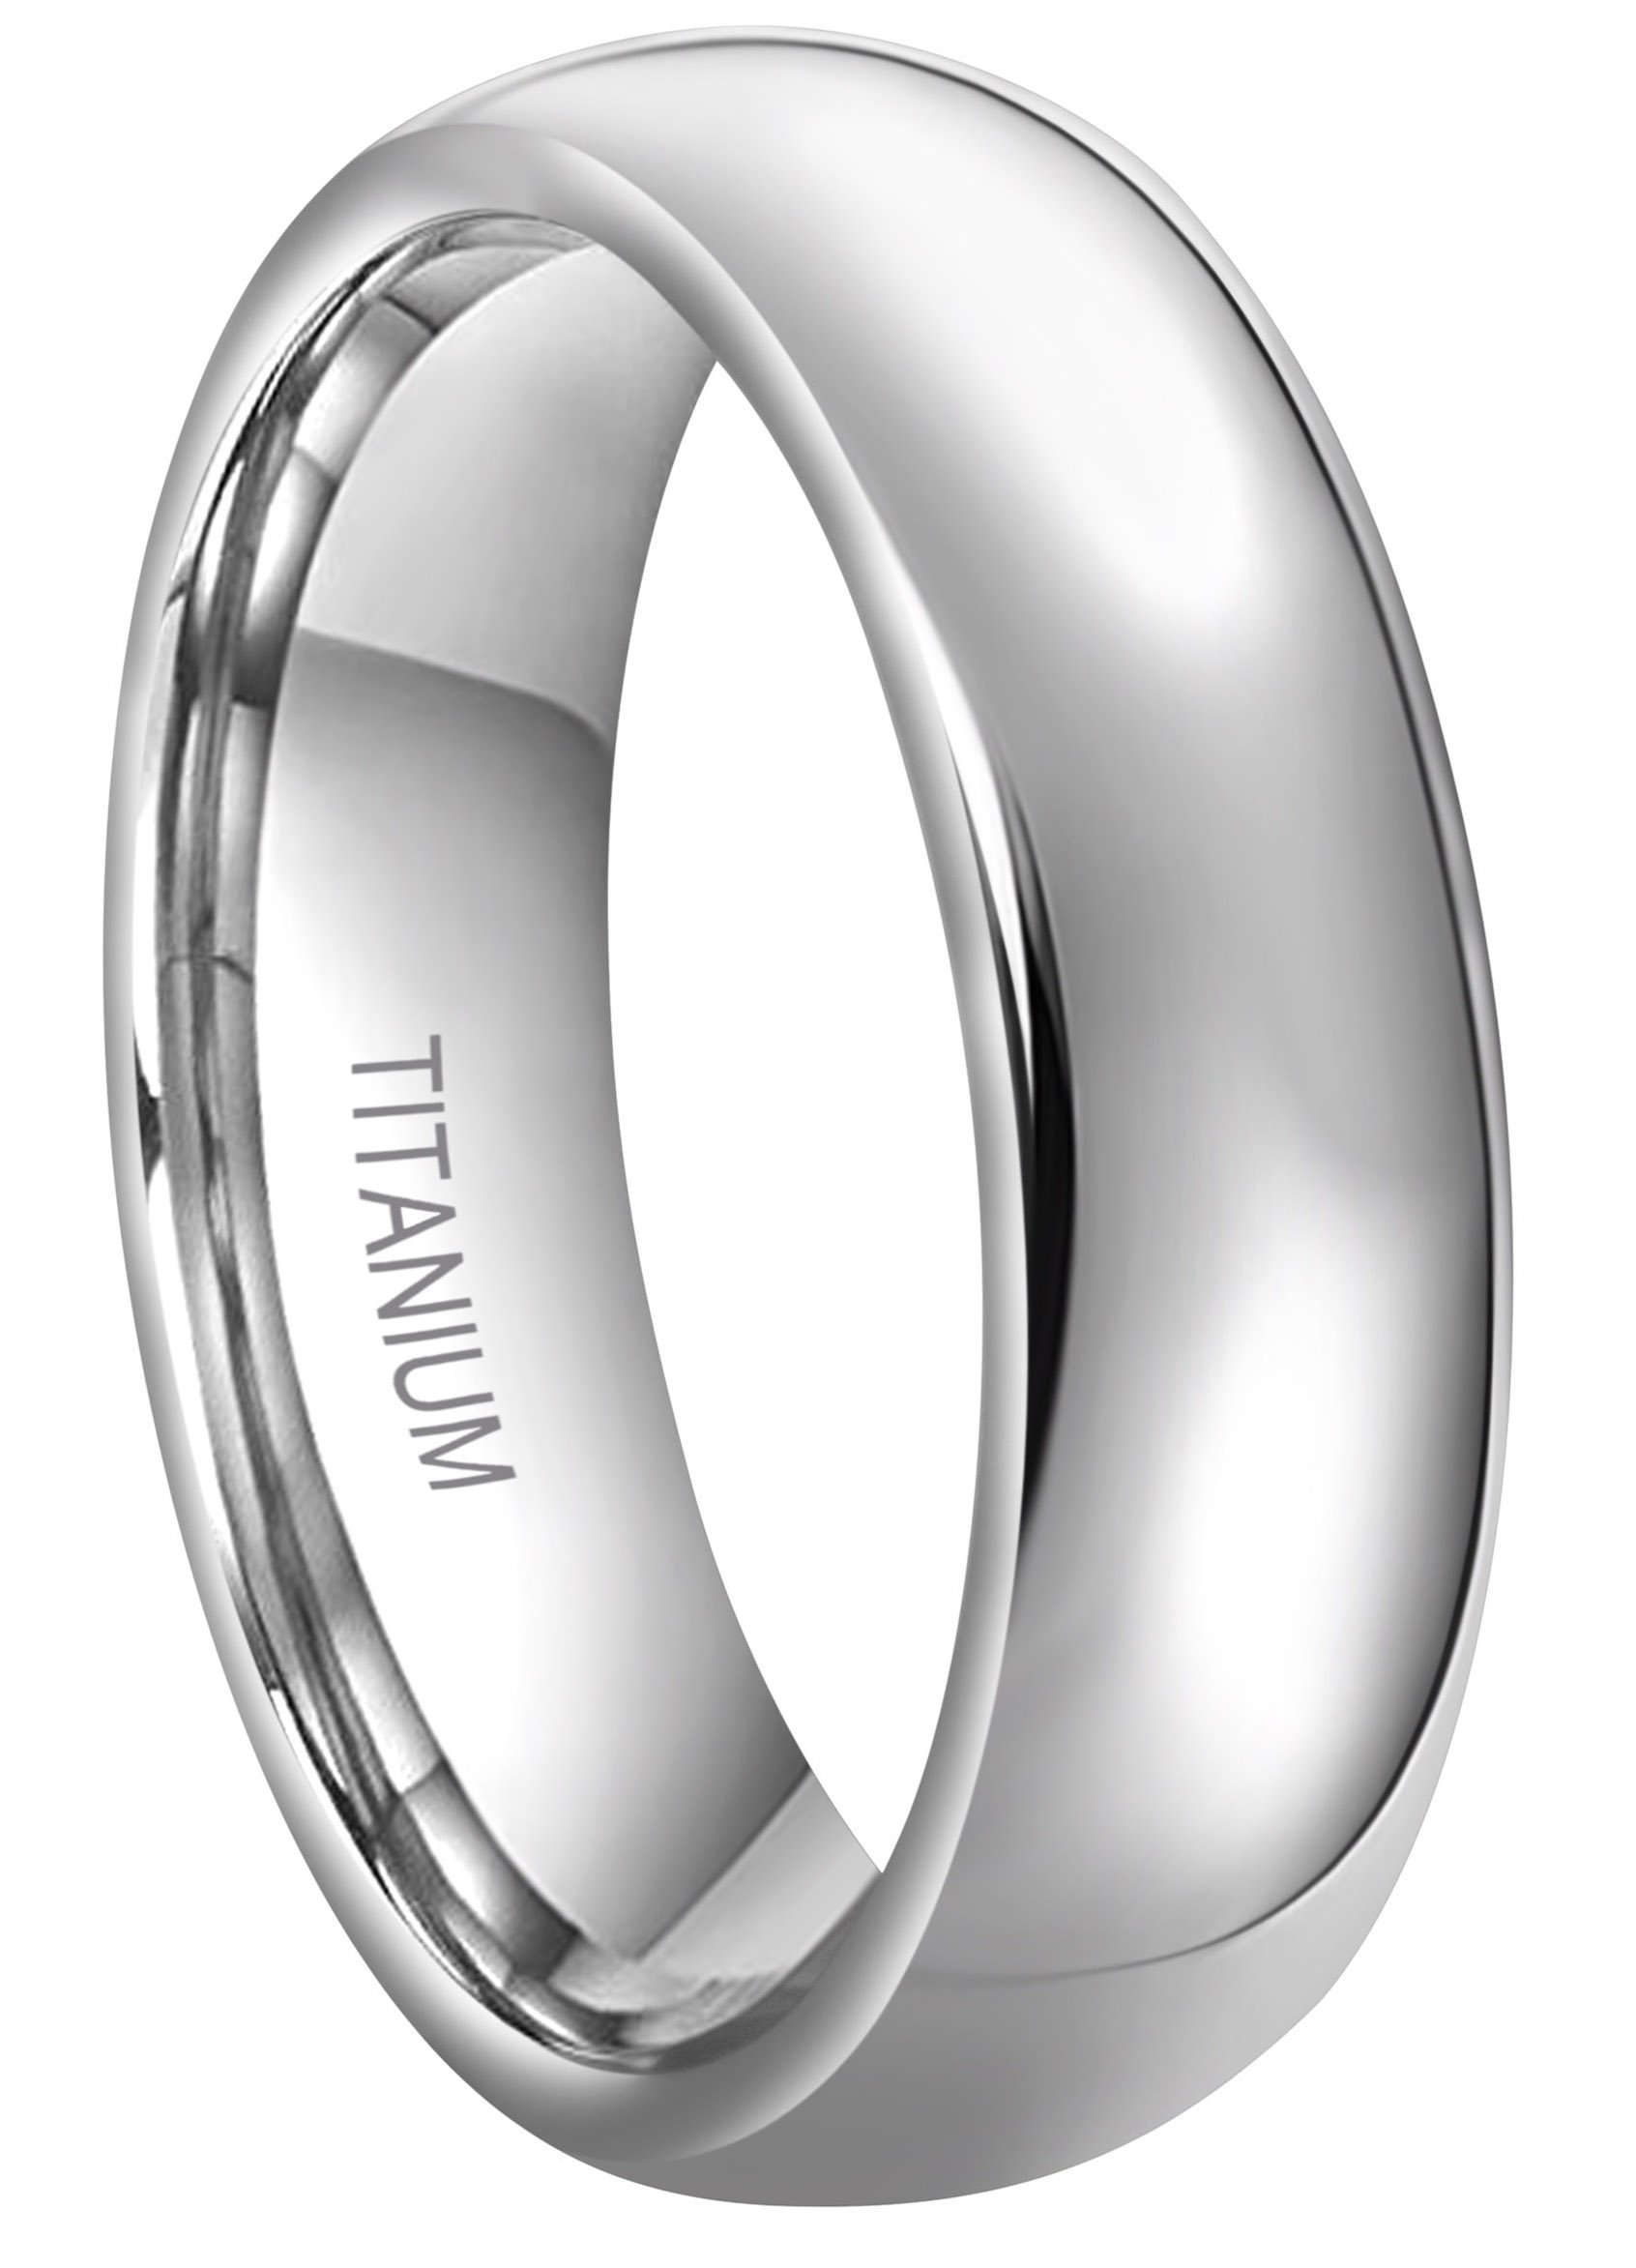 RoyalKay 4mm 6mm 8mm Titanium Wedding Band Ring Men Women Plain Dome Rounded High Polished Comfort Fit Size 4 To 16 (6mm,10)